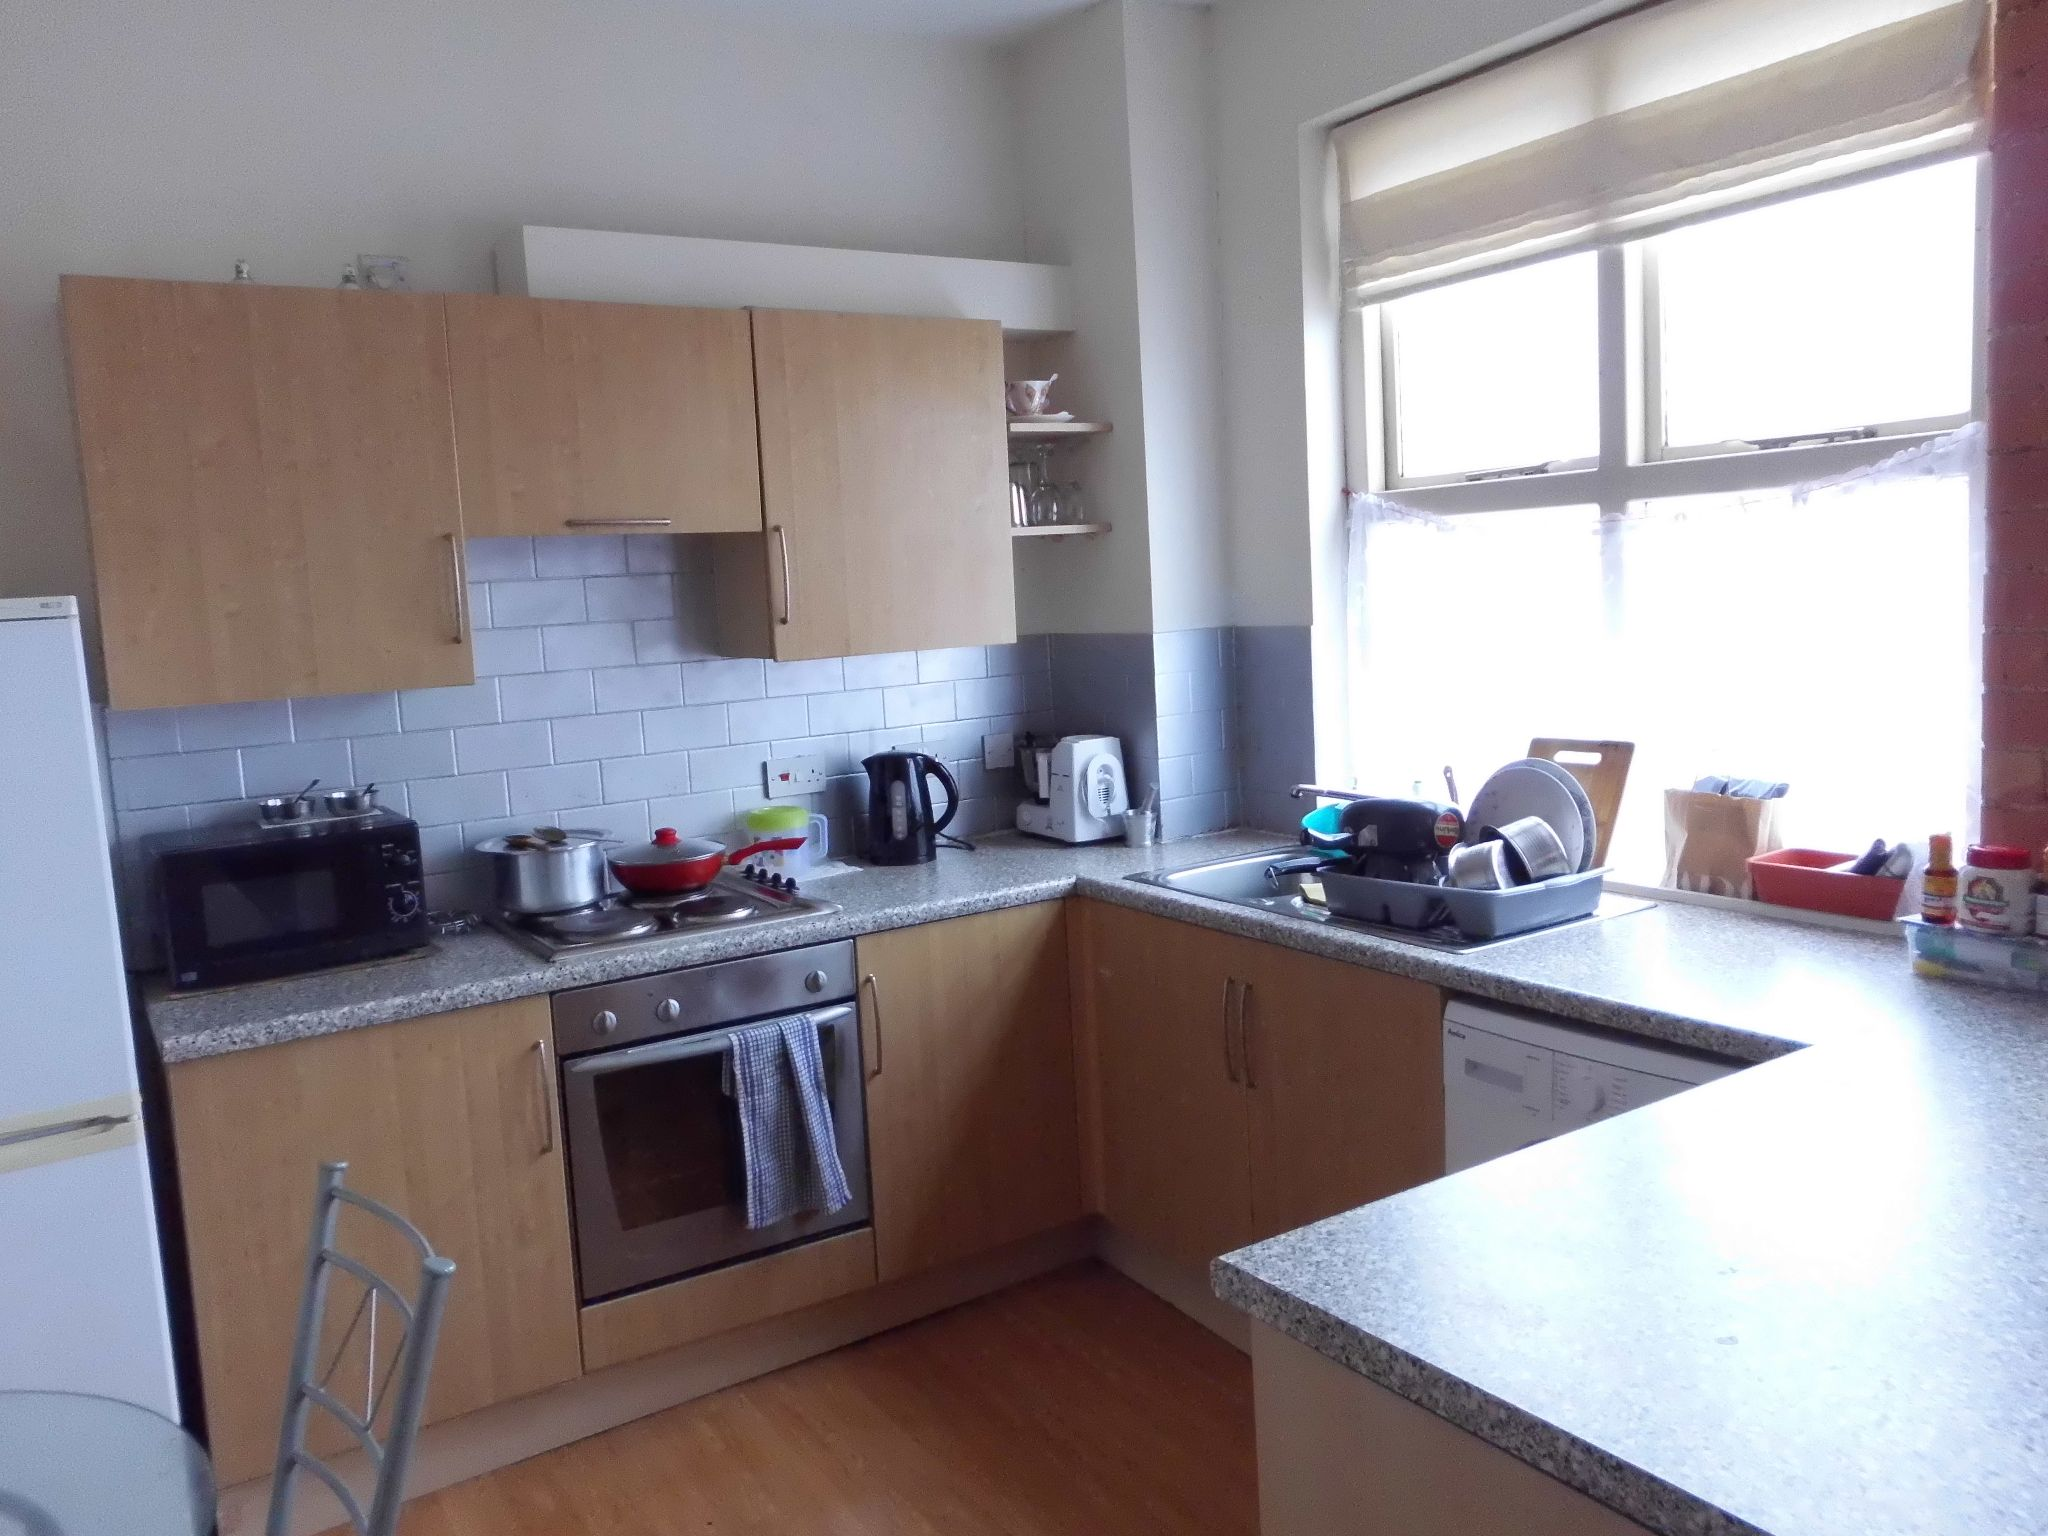 1 bedroom flat flat/apartment For Sale in Leicester - Photograph 5.